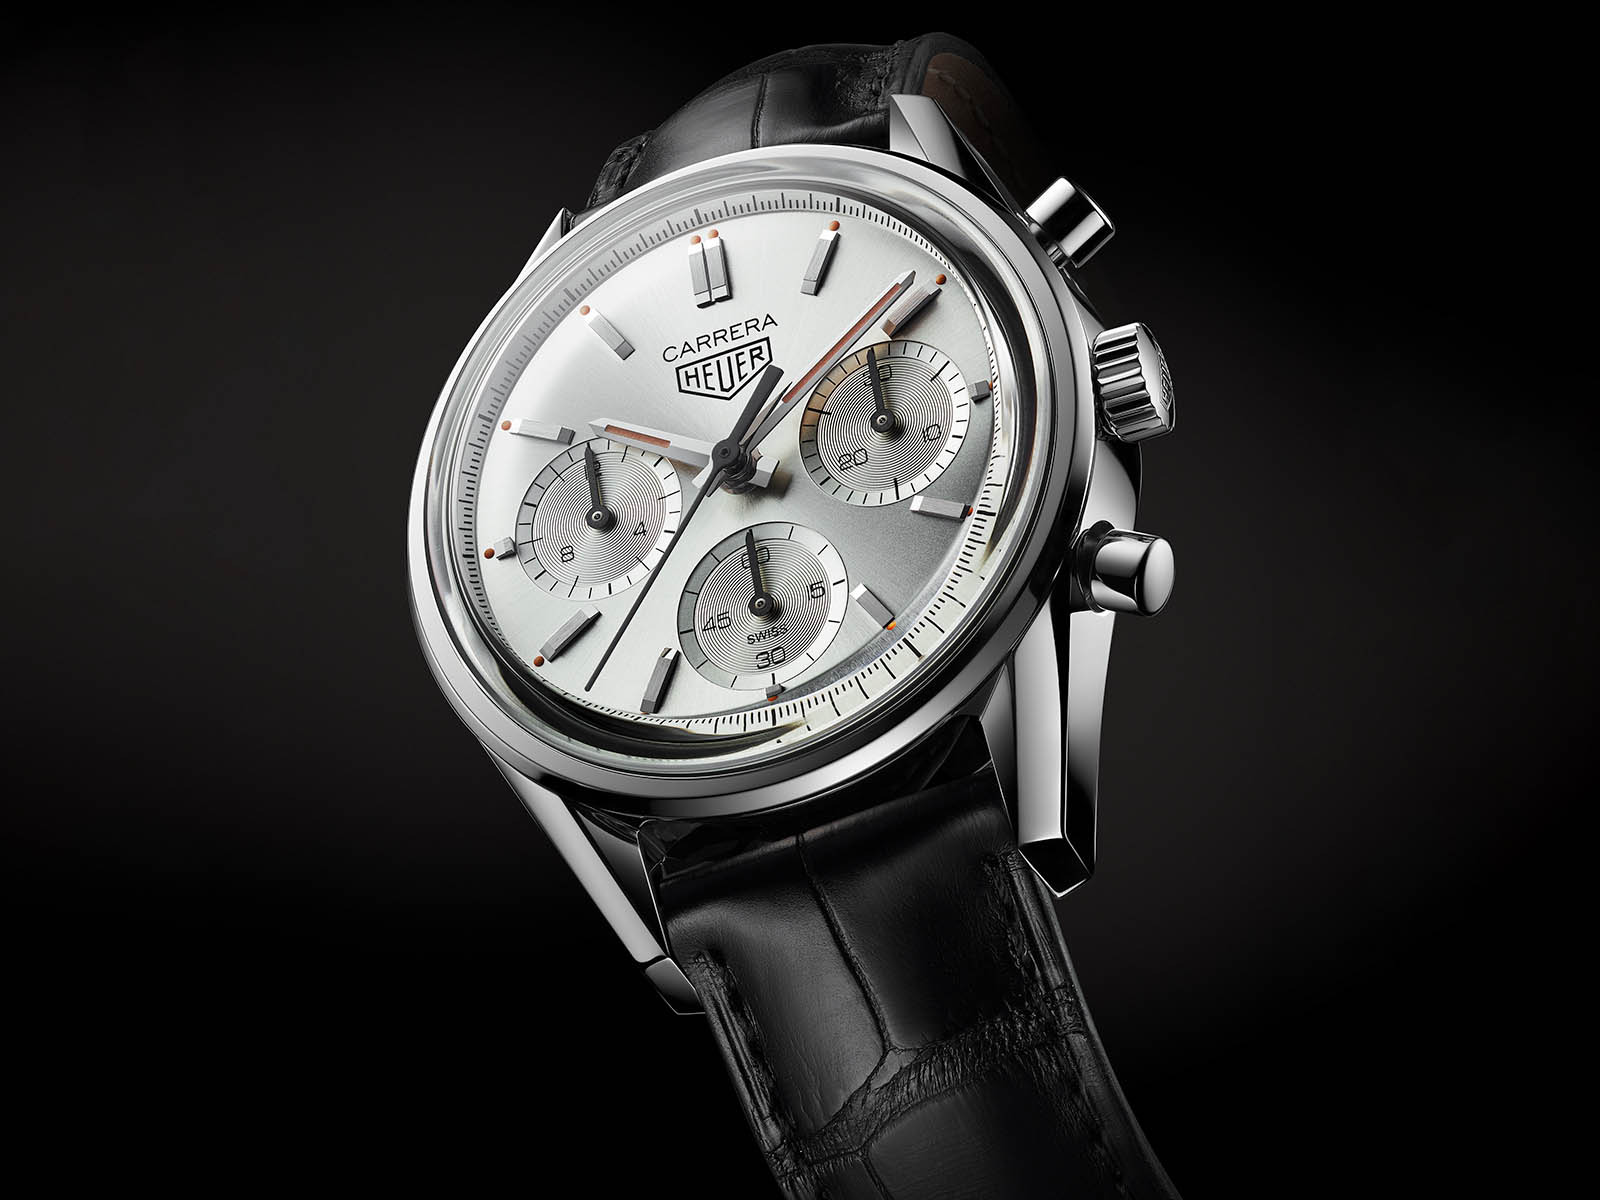 cbk221b-fc6479-tag-heuer-carrera-160-years-silver-limited-edition-1.jpg